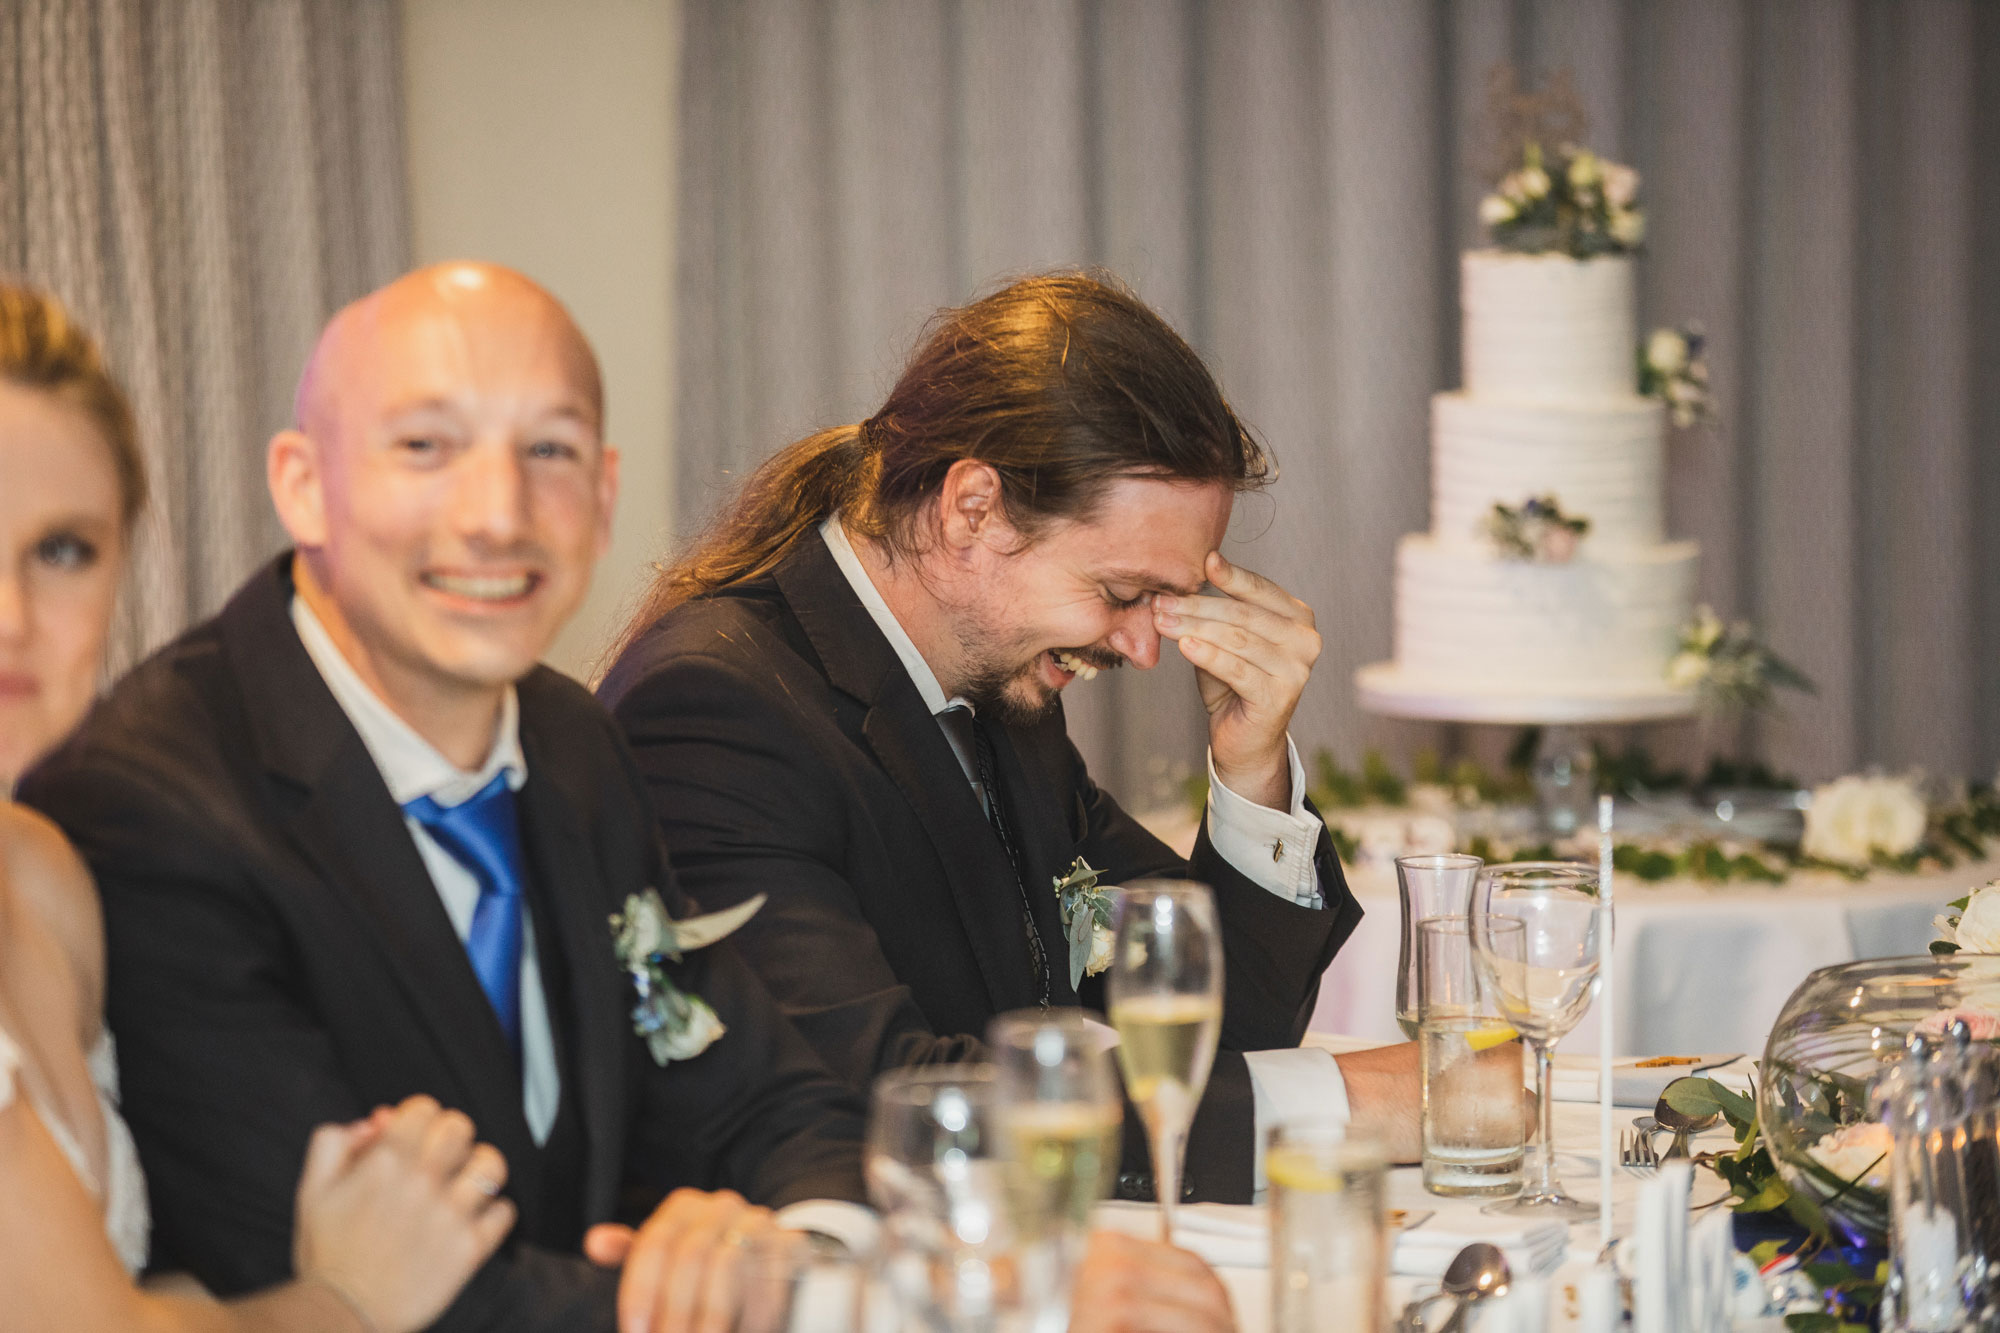 auckland wedding groomsman laughing